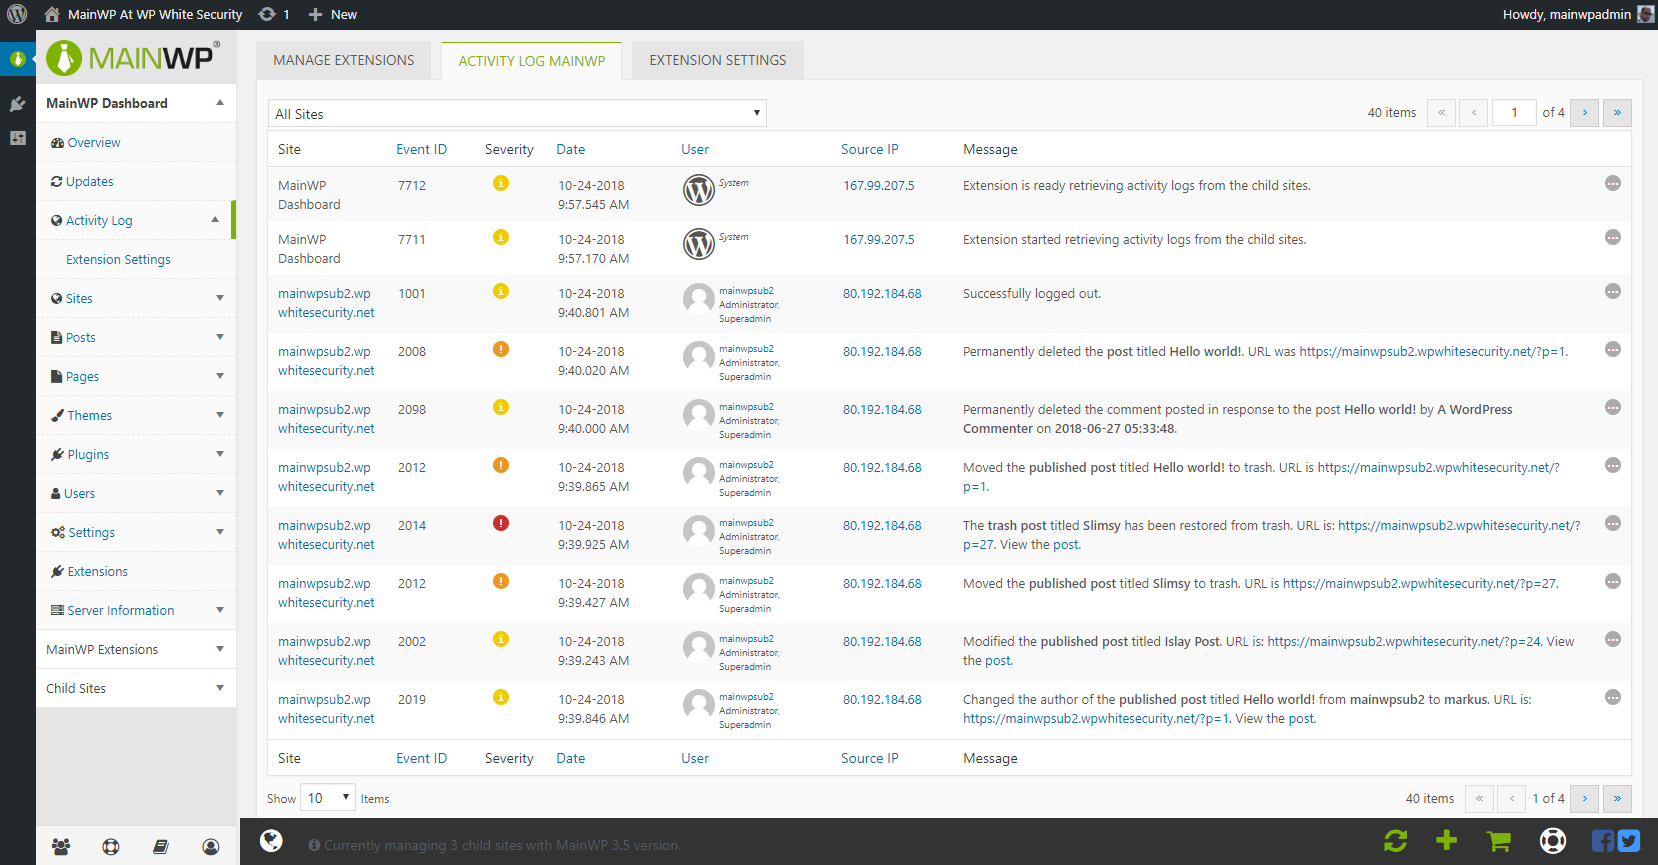 The Activity Log in the MainWP dashboard